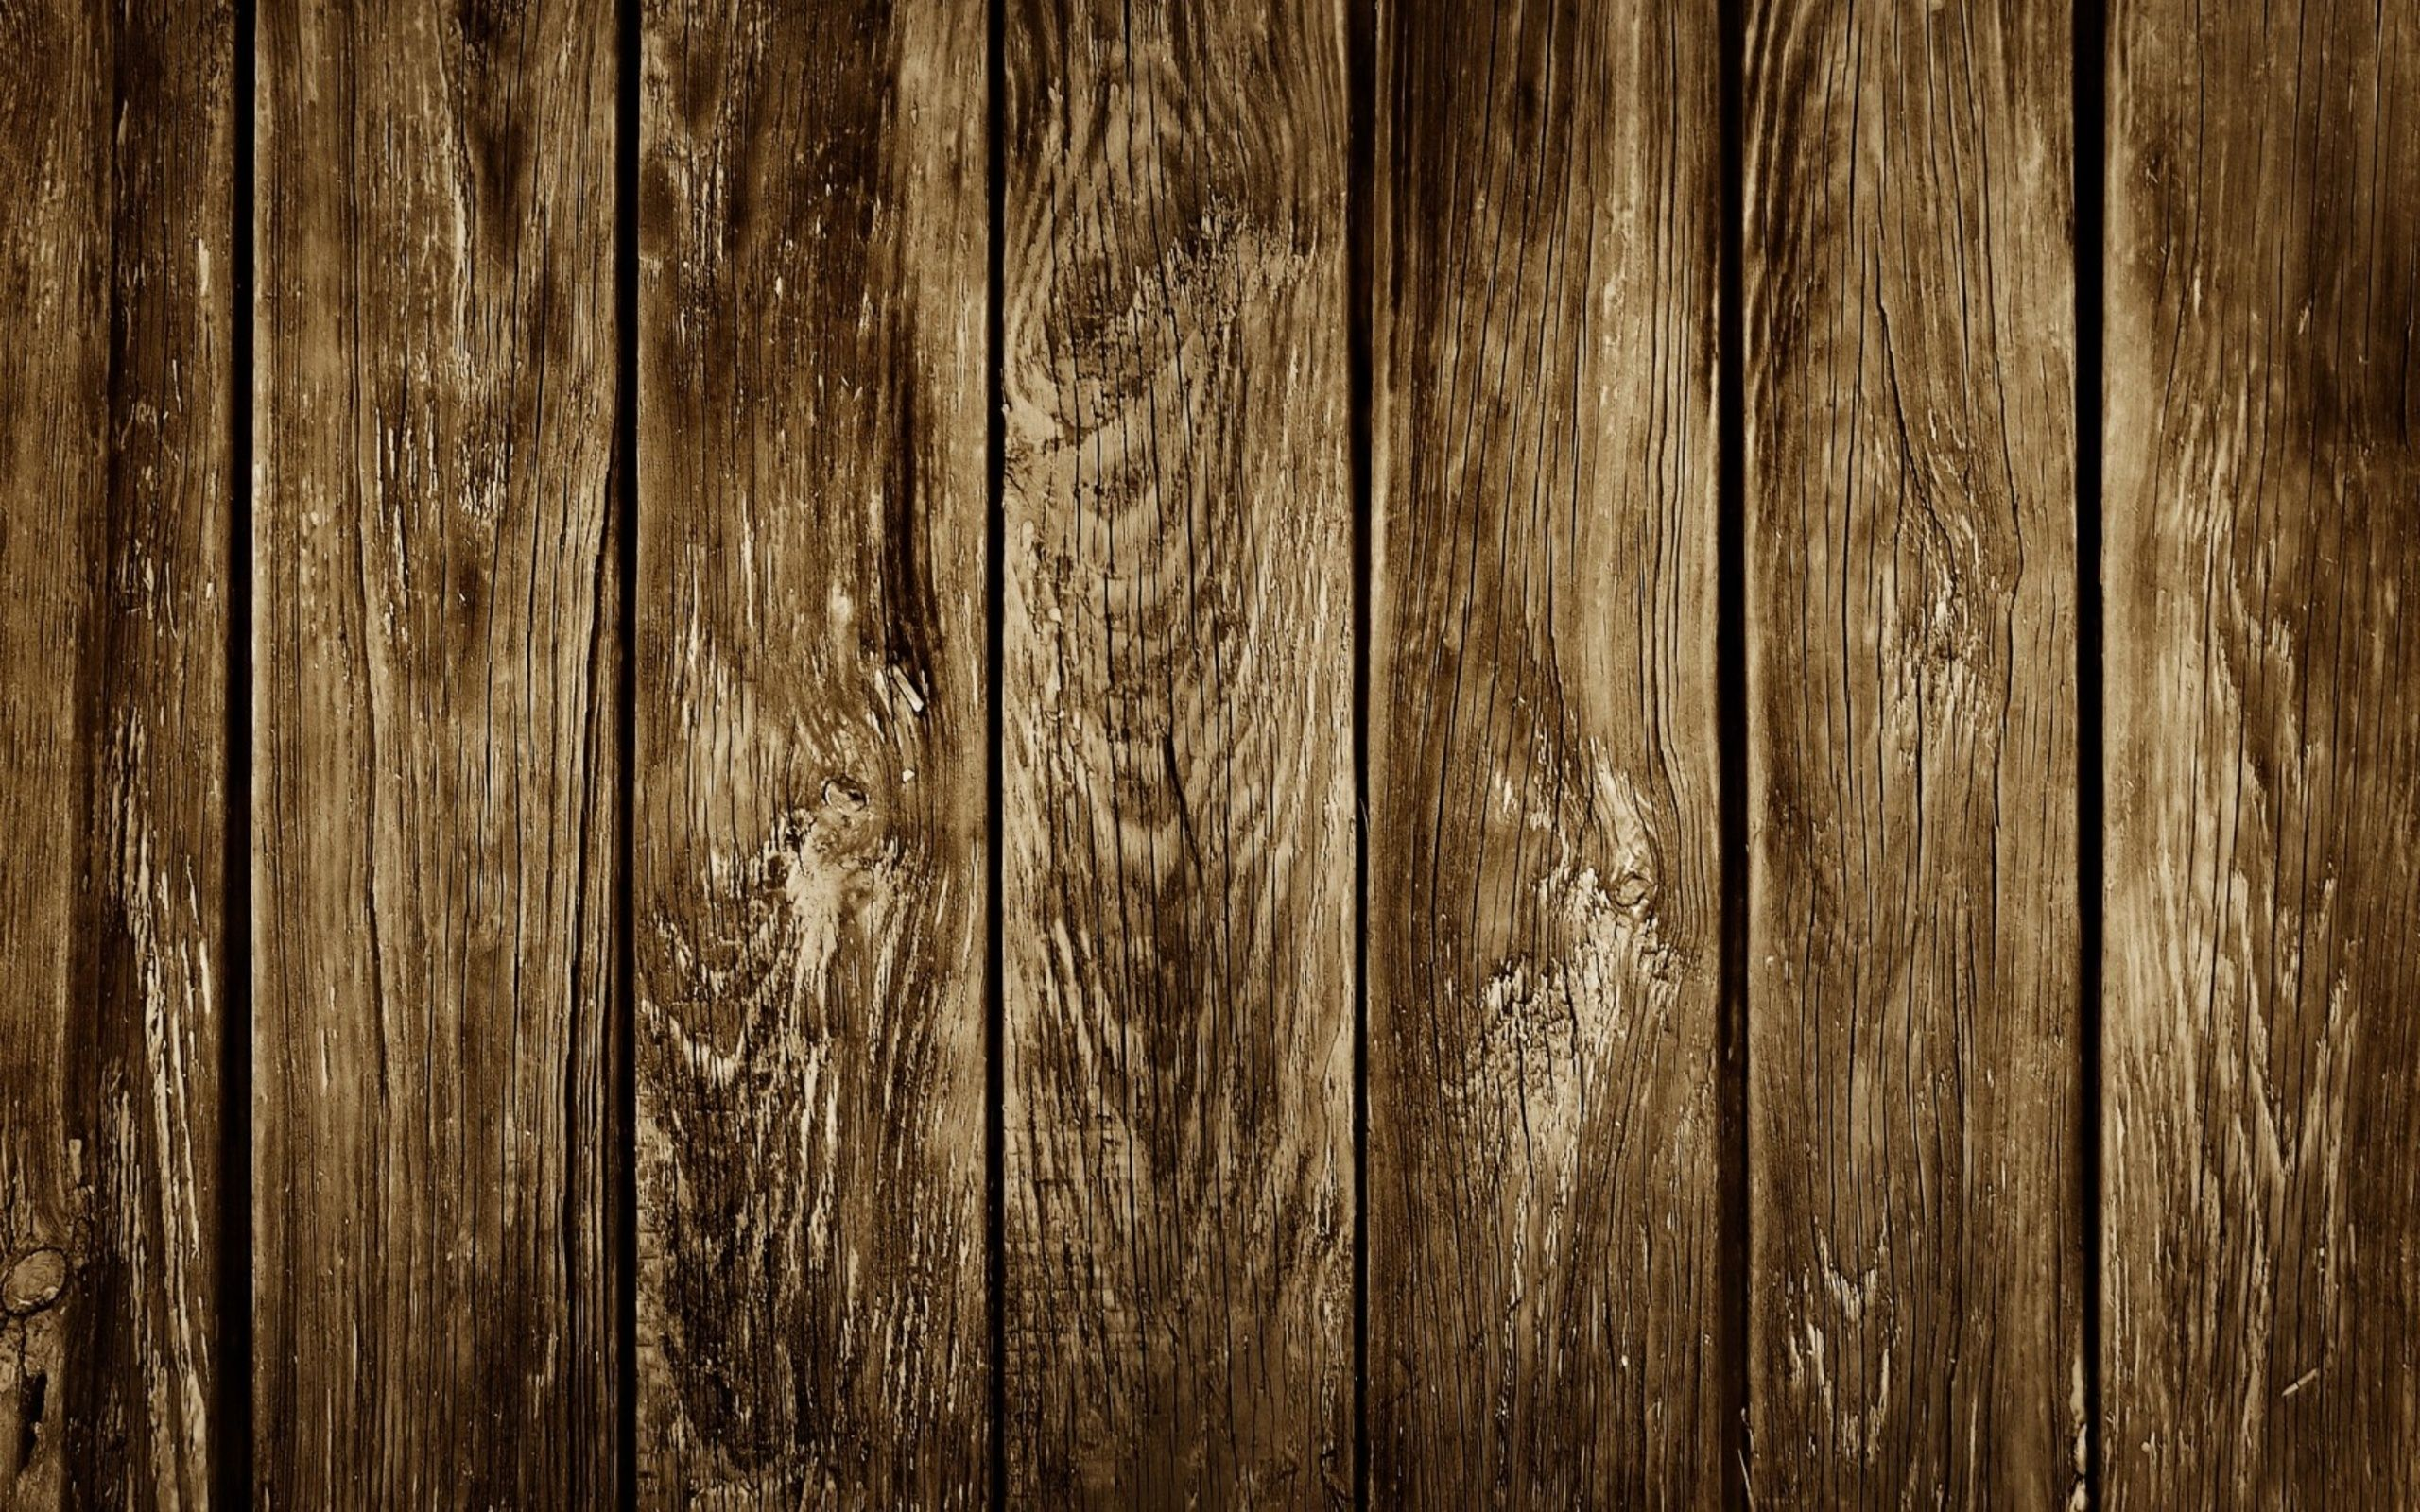 Dark Wood. Tap image to check out more Wooden Texture